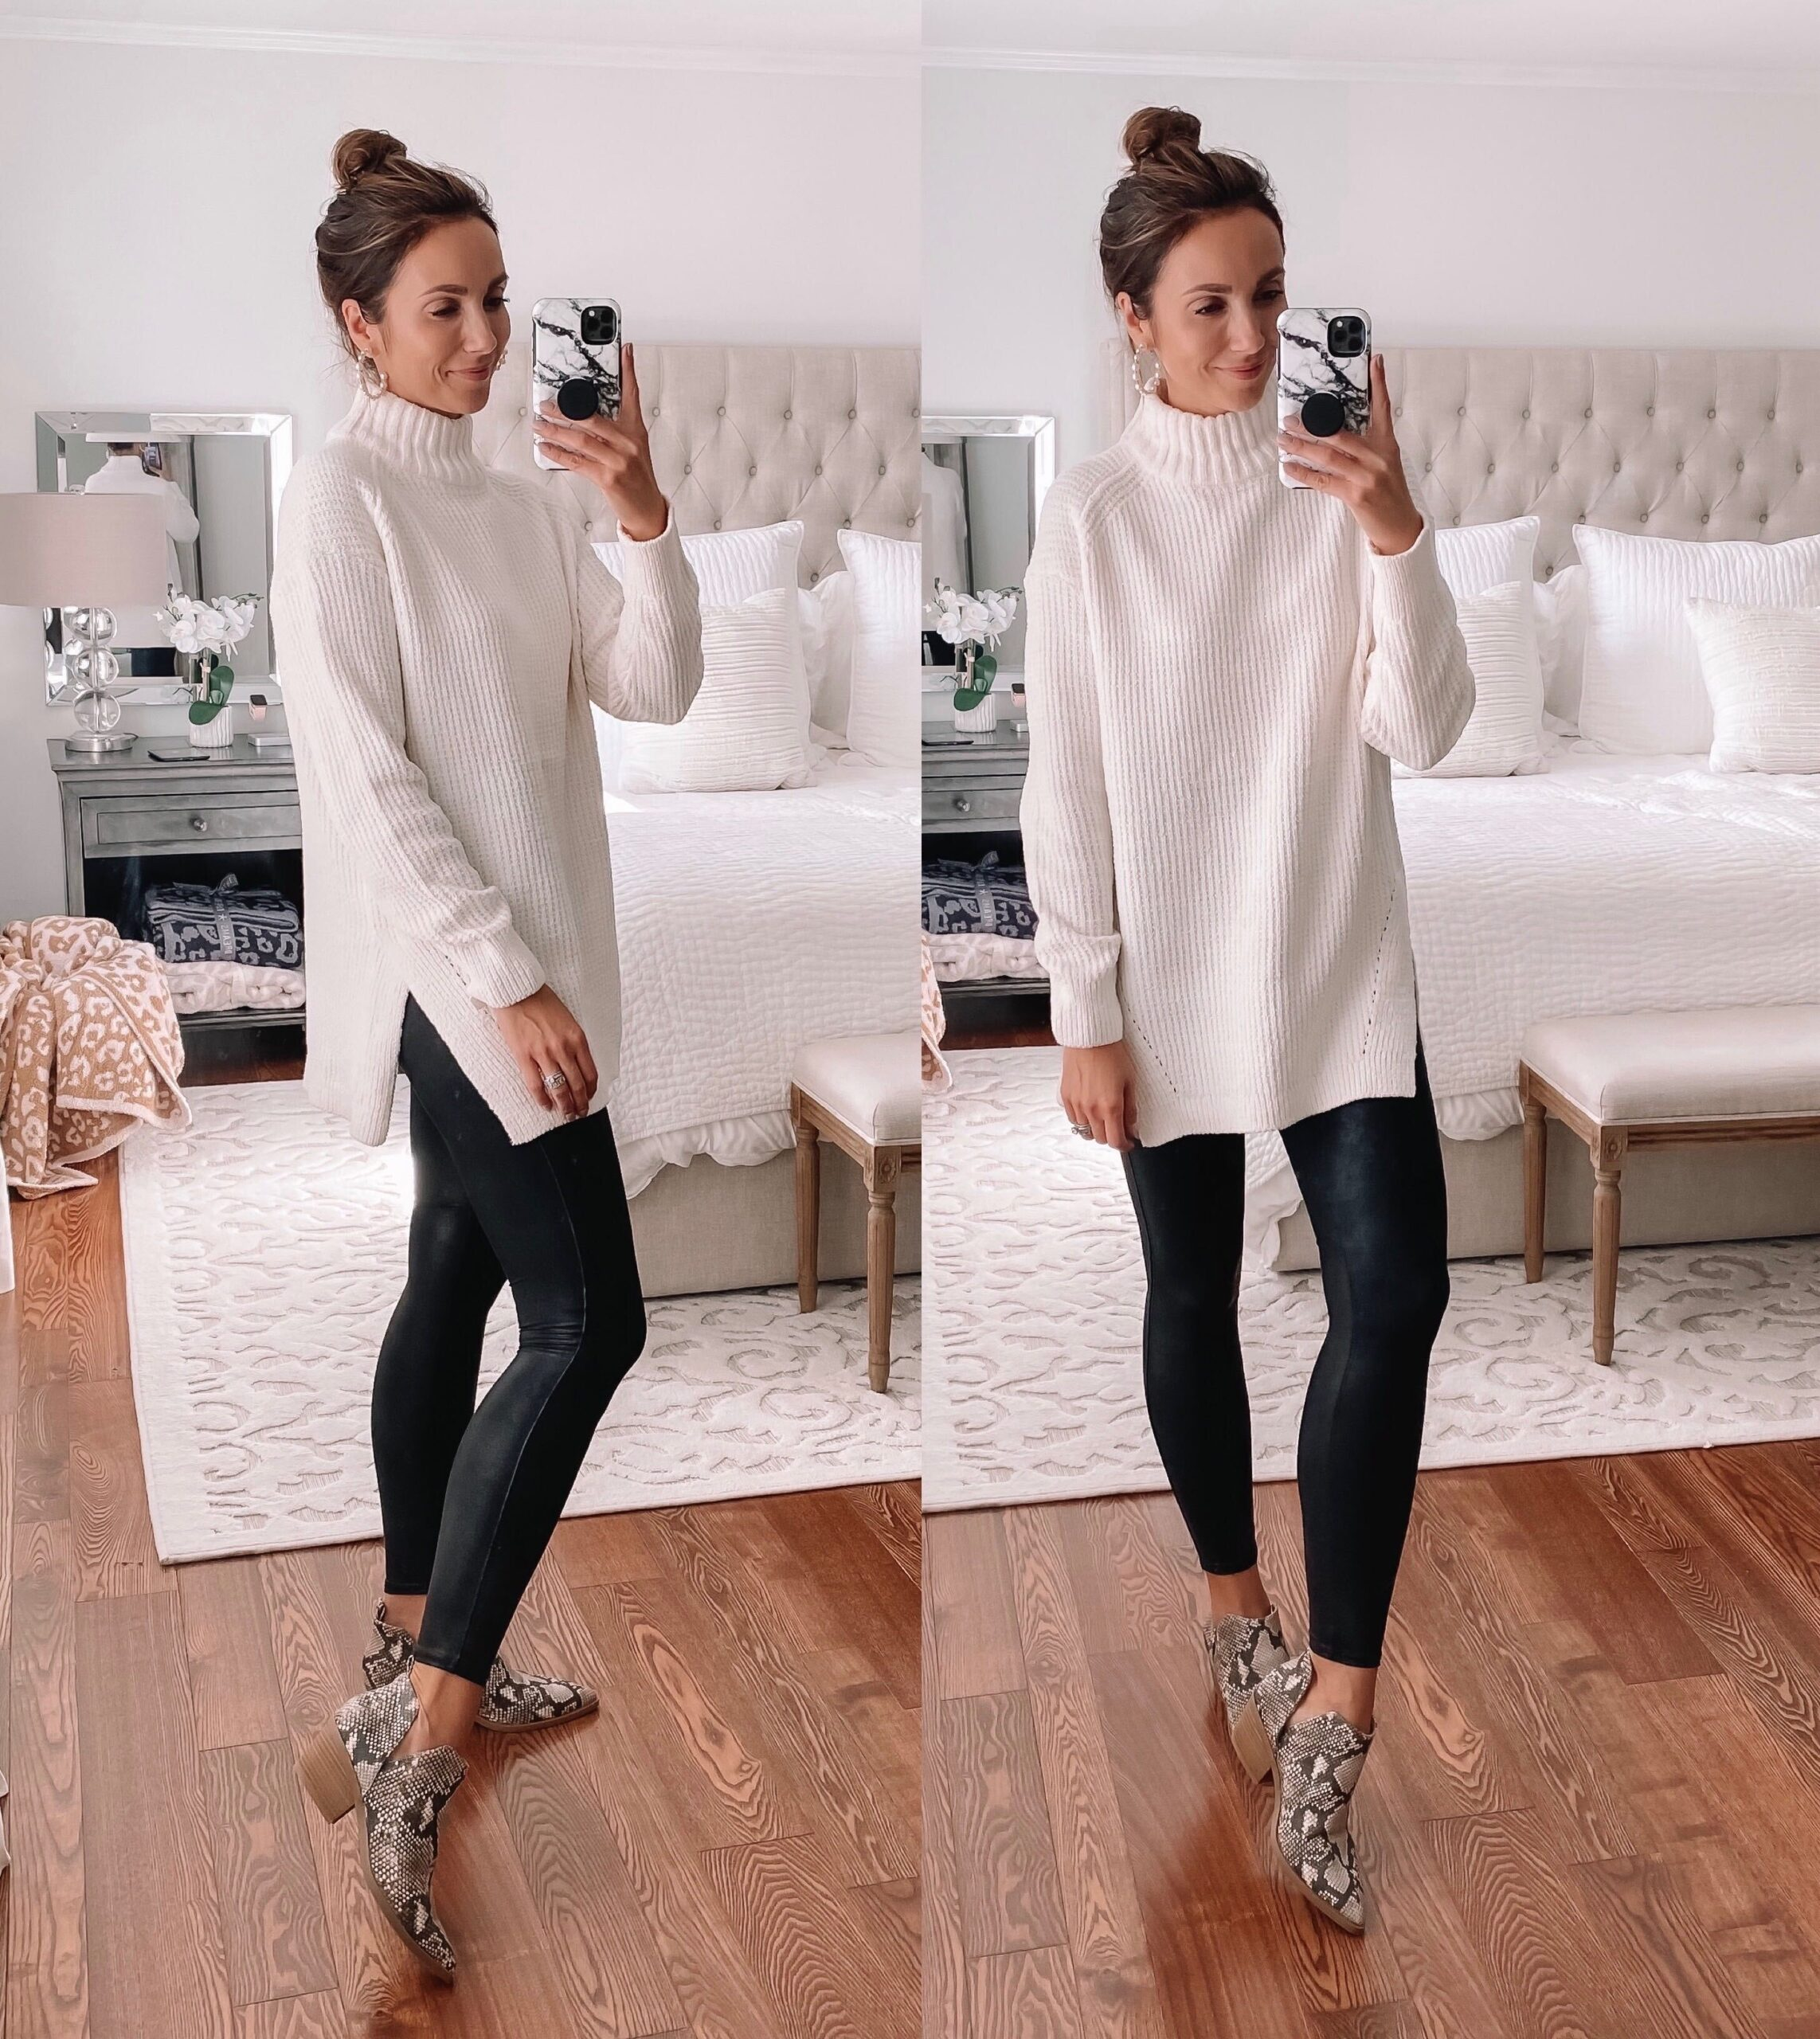 target sweater, faux leather leggings, fall outfit idea